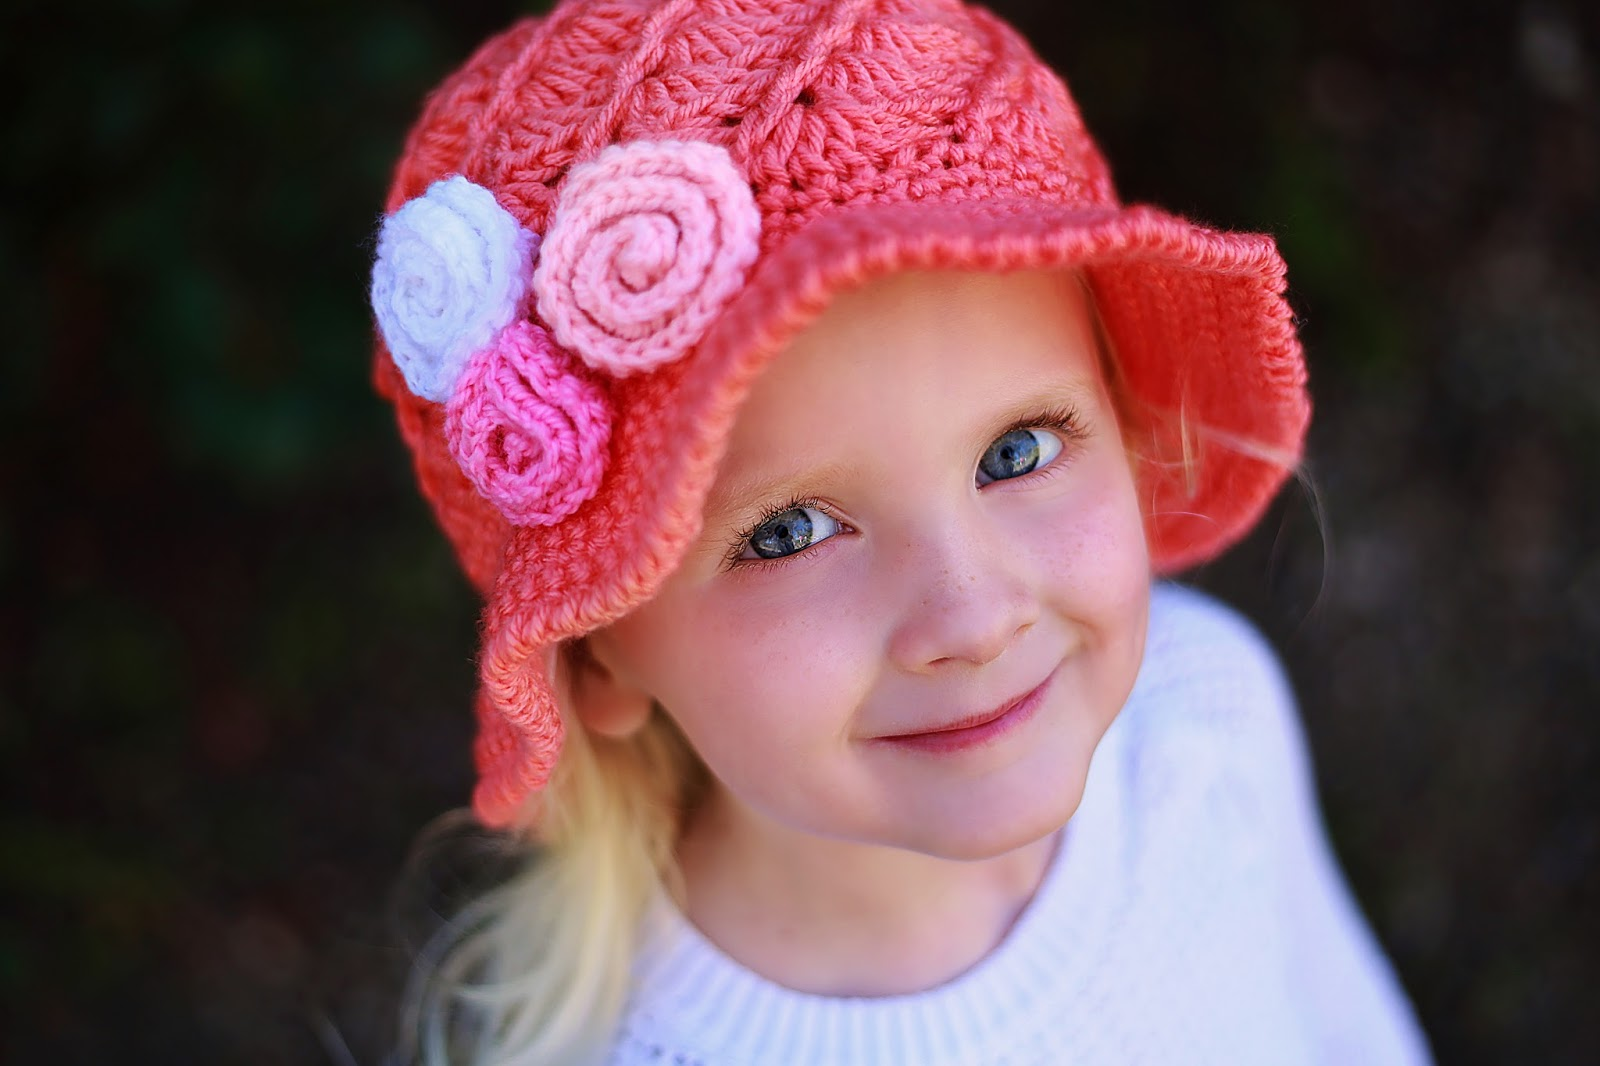 Crochet Hat Pattern For 8 Month Old : Crochet Dreamz: April Sun Hat, Crochet Pattern, Includes ...